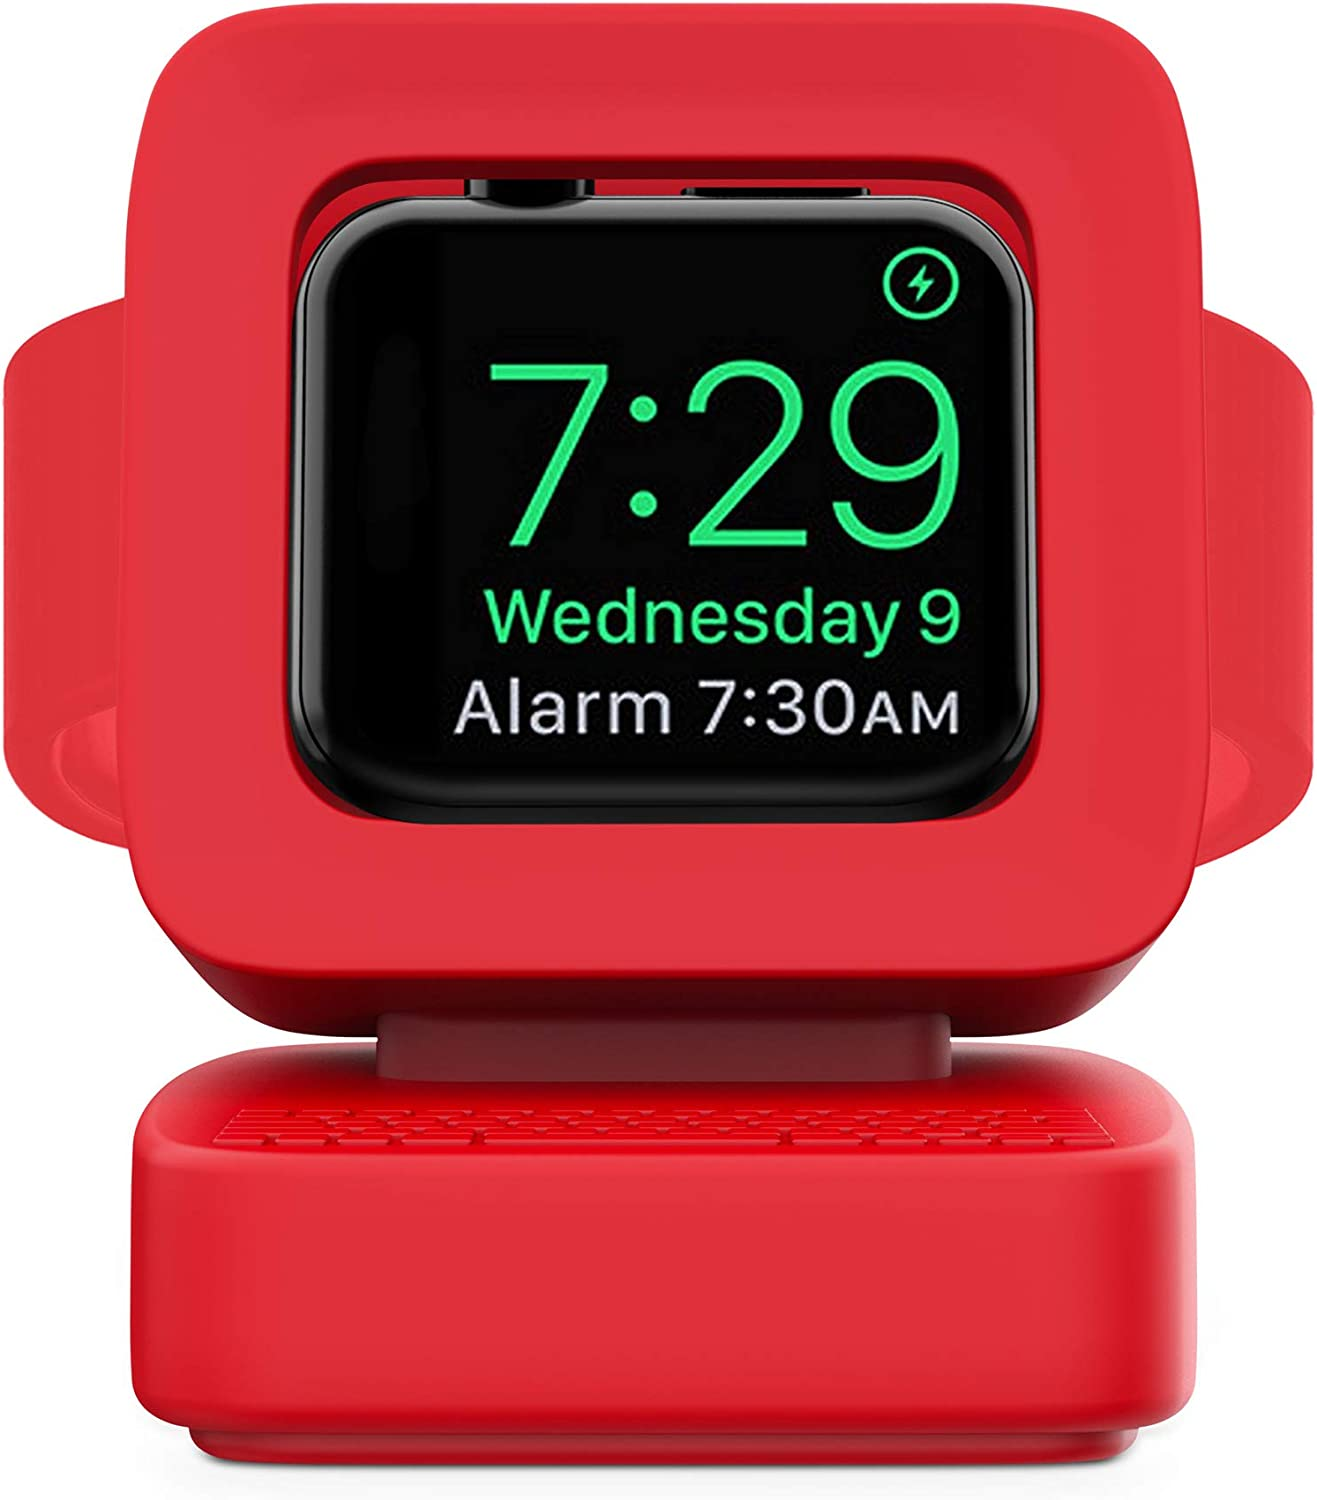 Stand for Apple Watch, YourLovely Charging Stand:Desk Watch Stand Holder Charging Dock Station Designed for Apple Watch Series SE/Series 6/5 / 4/3 / 2/1 / 44mm / 42mm / 40mm / 38mm Red